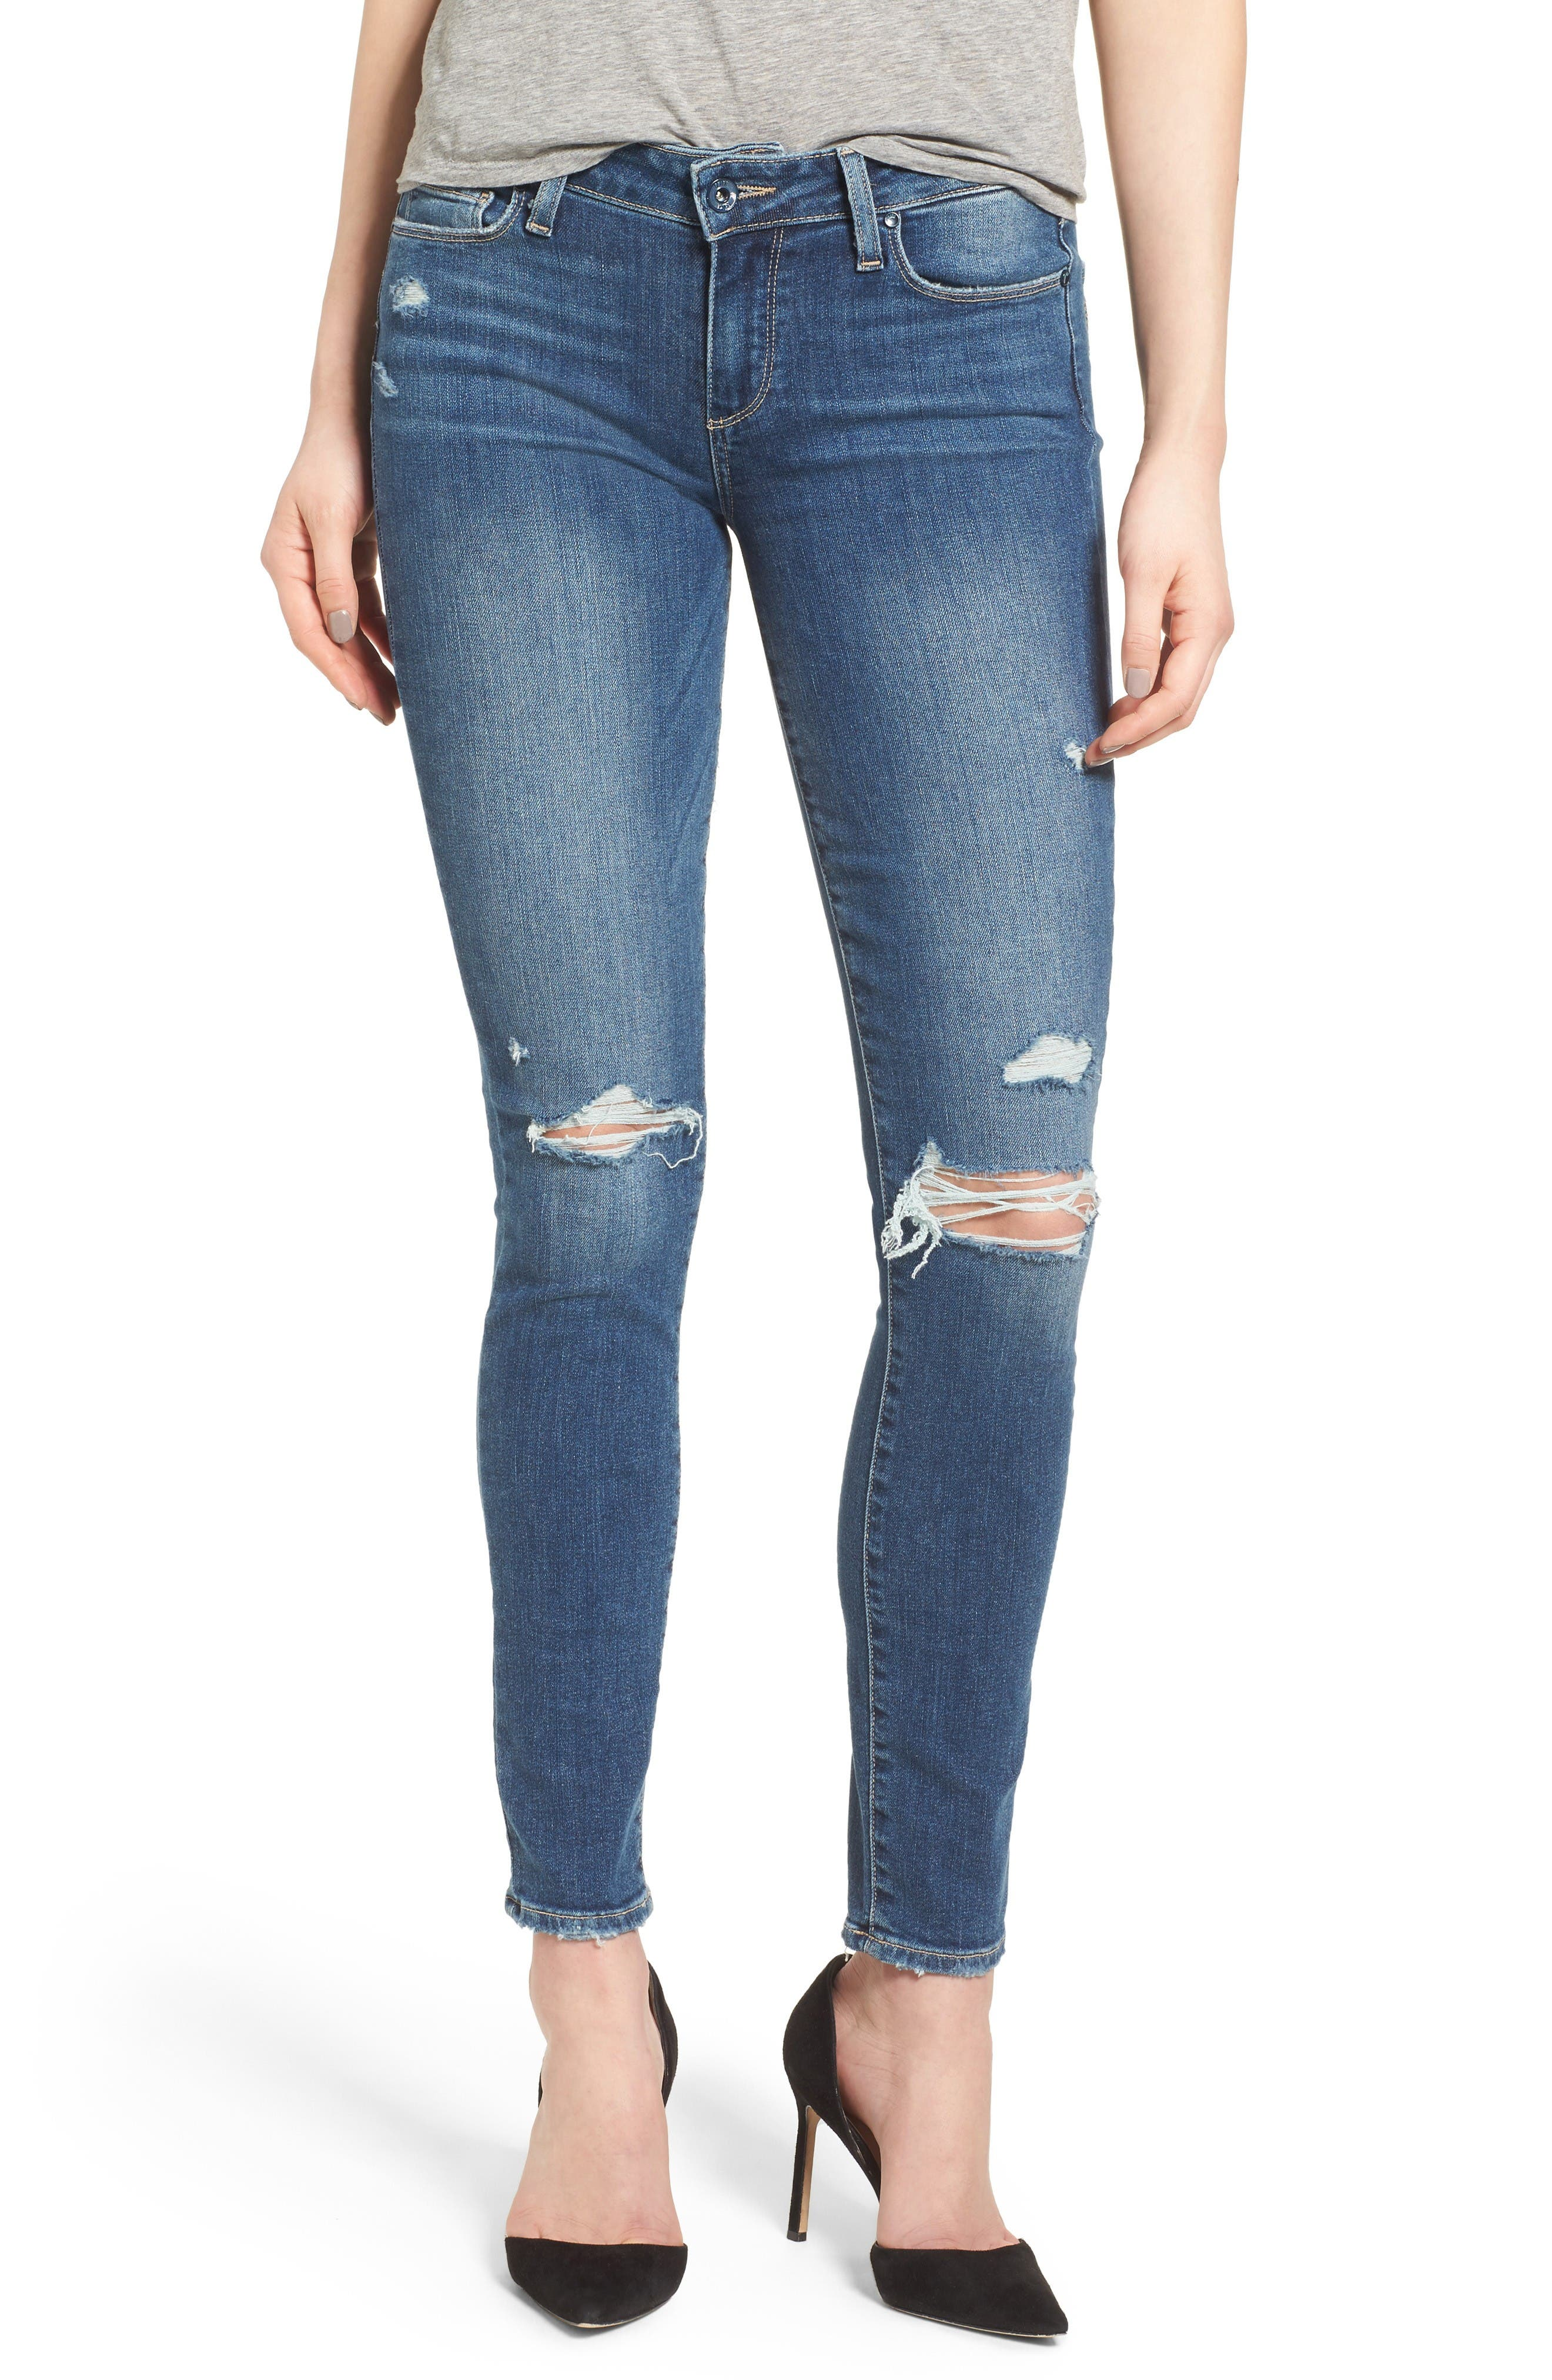 Alternate Image 1 Selected - PAIGE Verdugo Ripped Ultra Skinny Jeans (Destructed Blue)